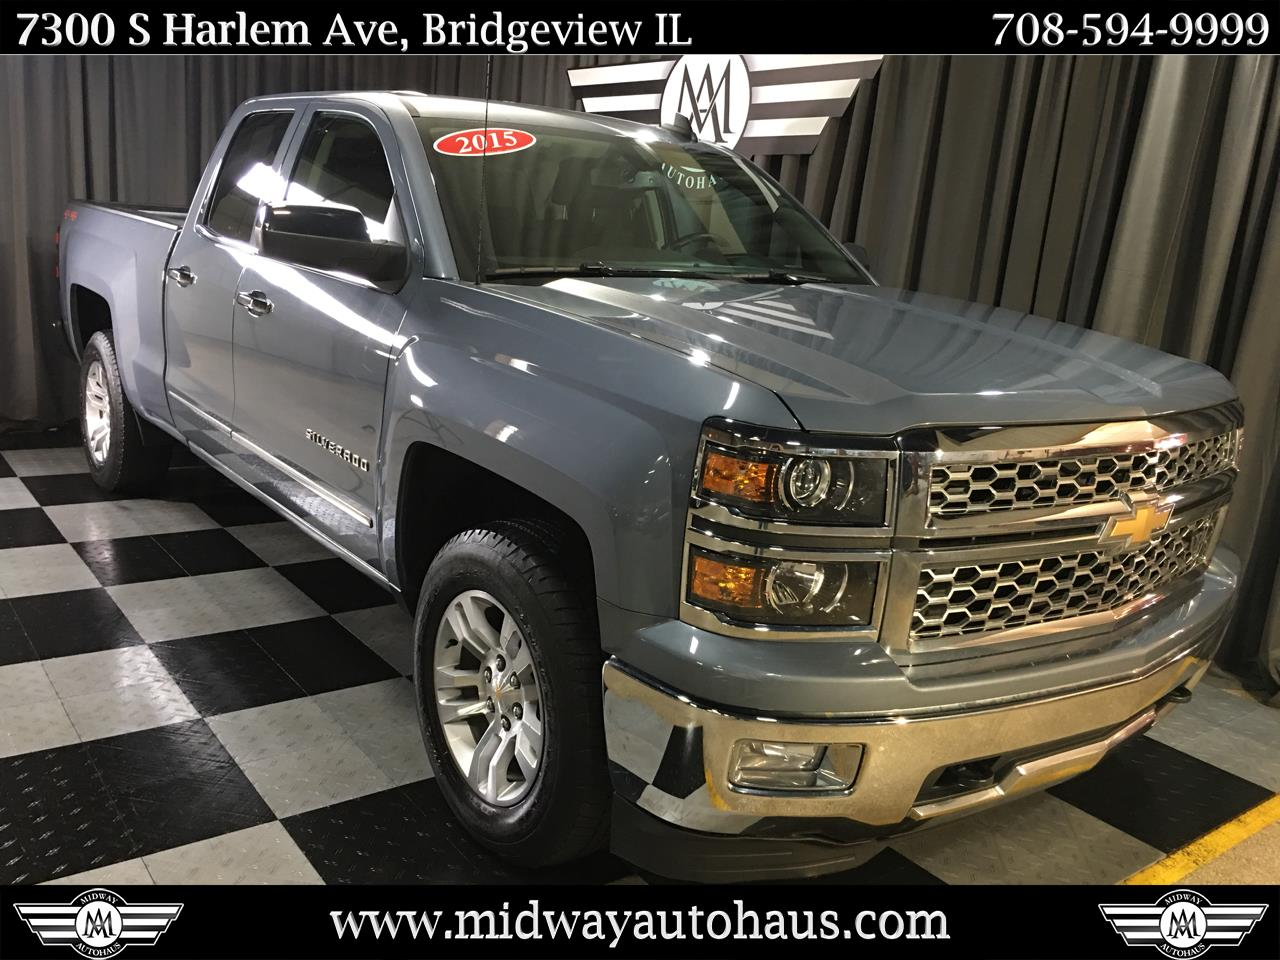 Pre-Owned 2015 Chevrolet Silverado 1500 4WD Double Cab 143.5 in LTZ w/1LZ